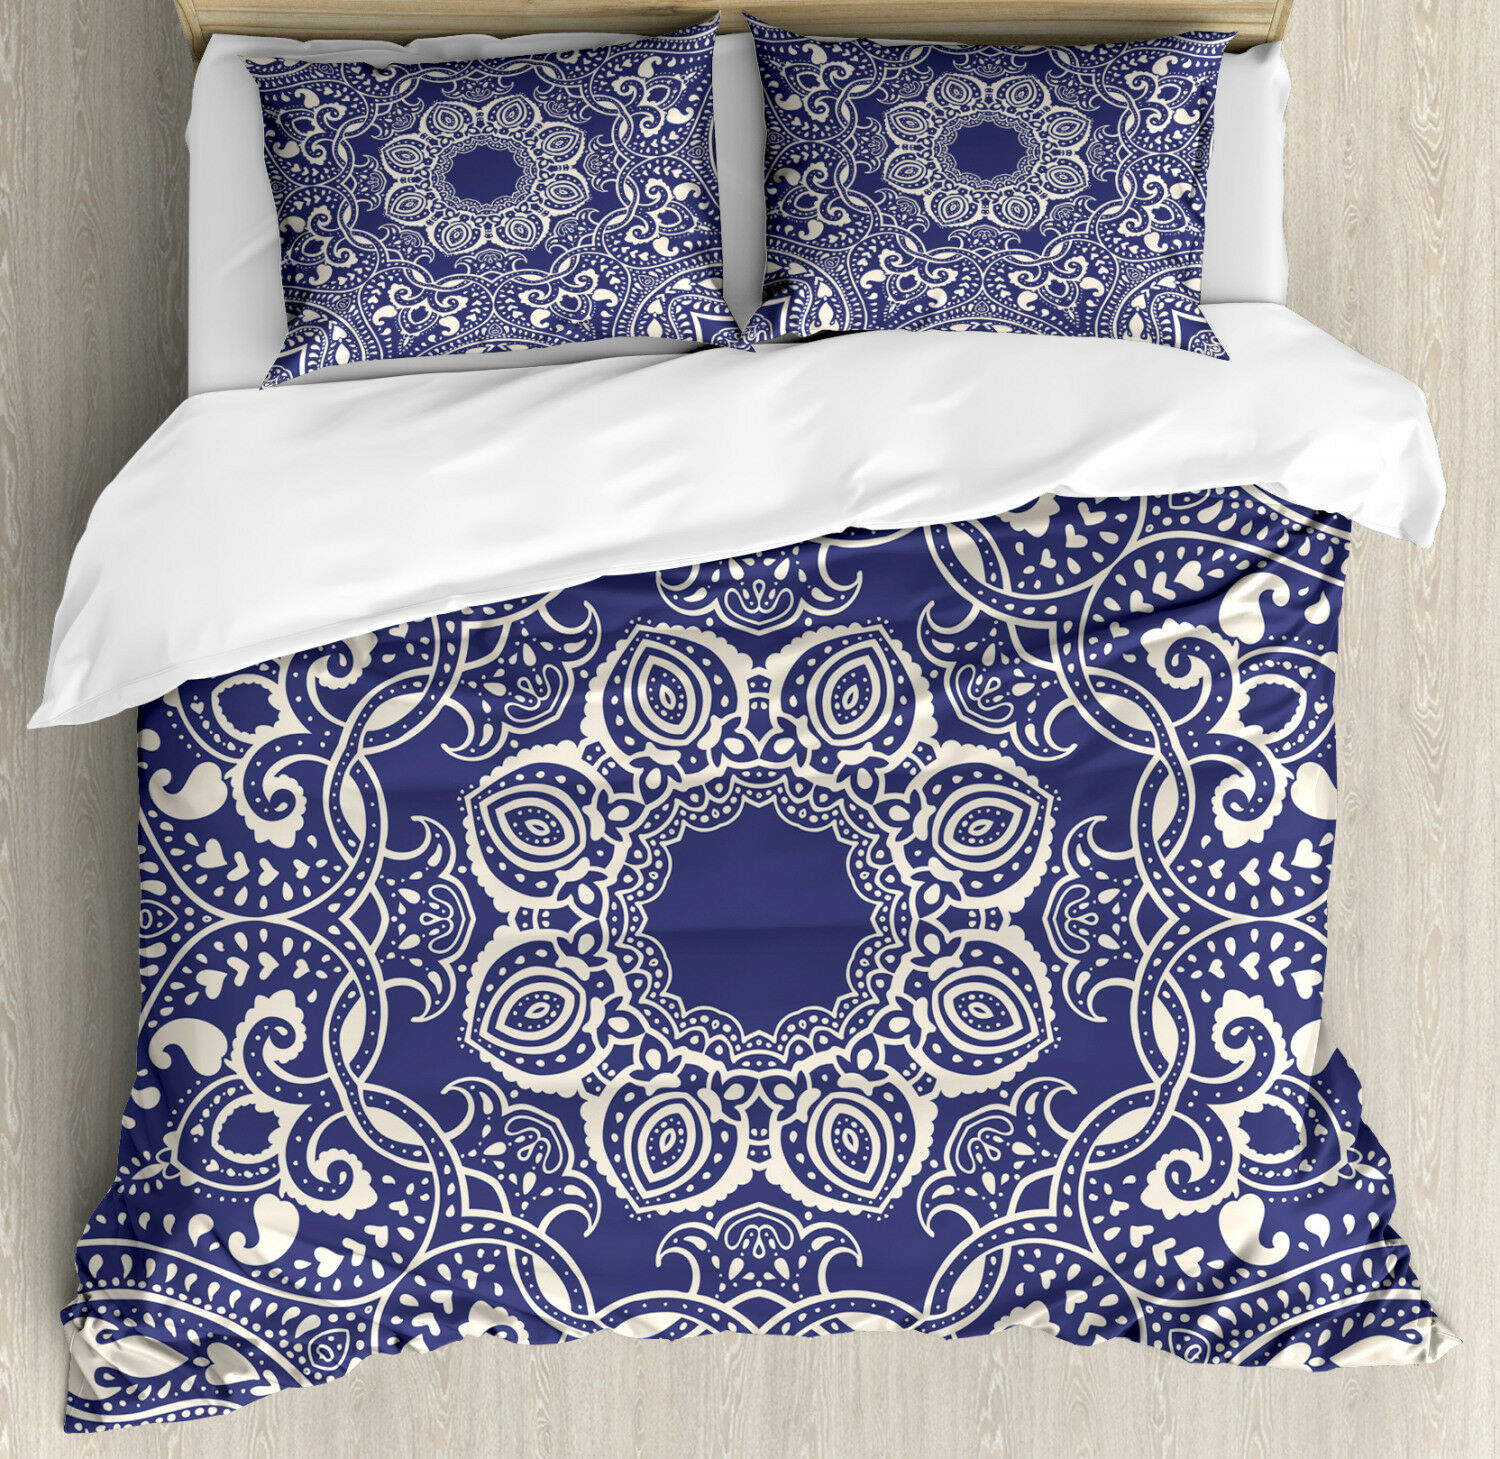 Oriental Duvet Cover Set with Pillow Shams Artistic and Curly Leaves Print